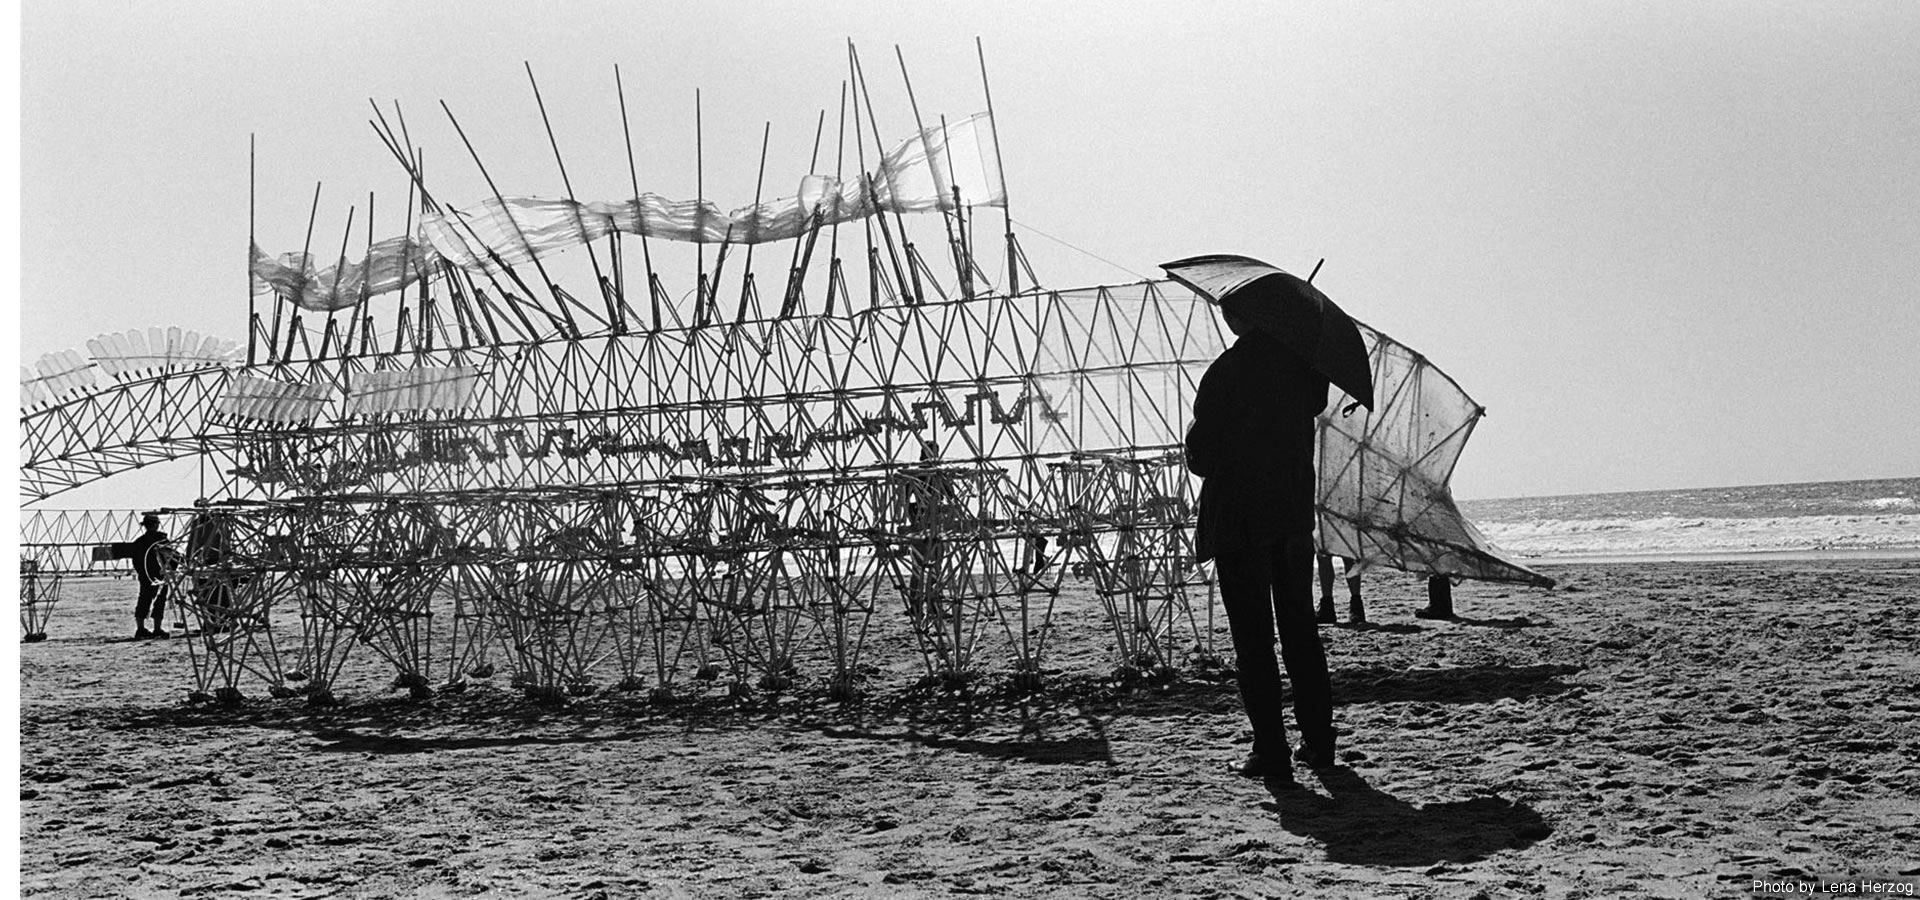 Strandbeest on the beach. Photography by Lena Herzog